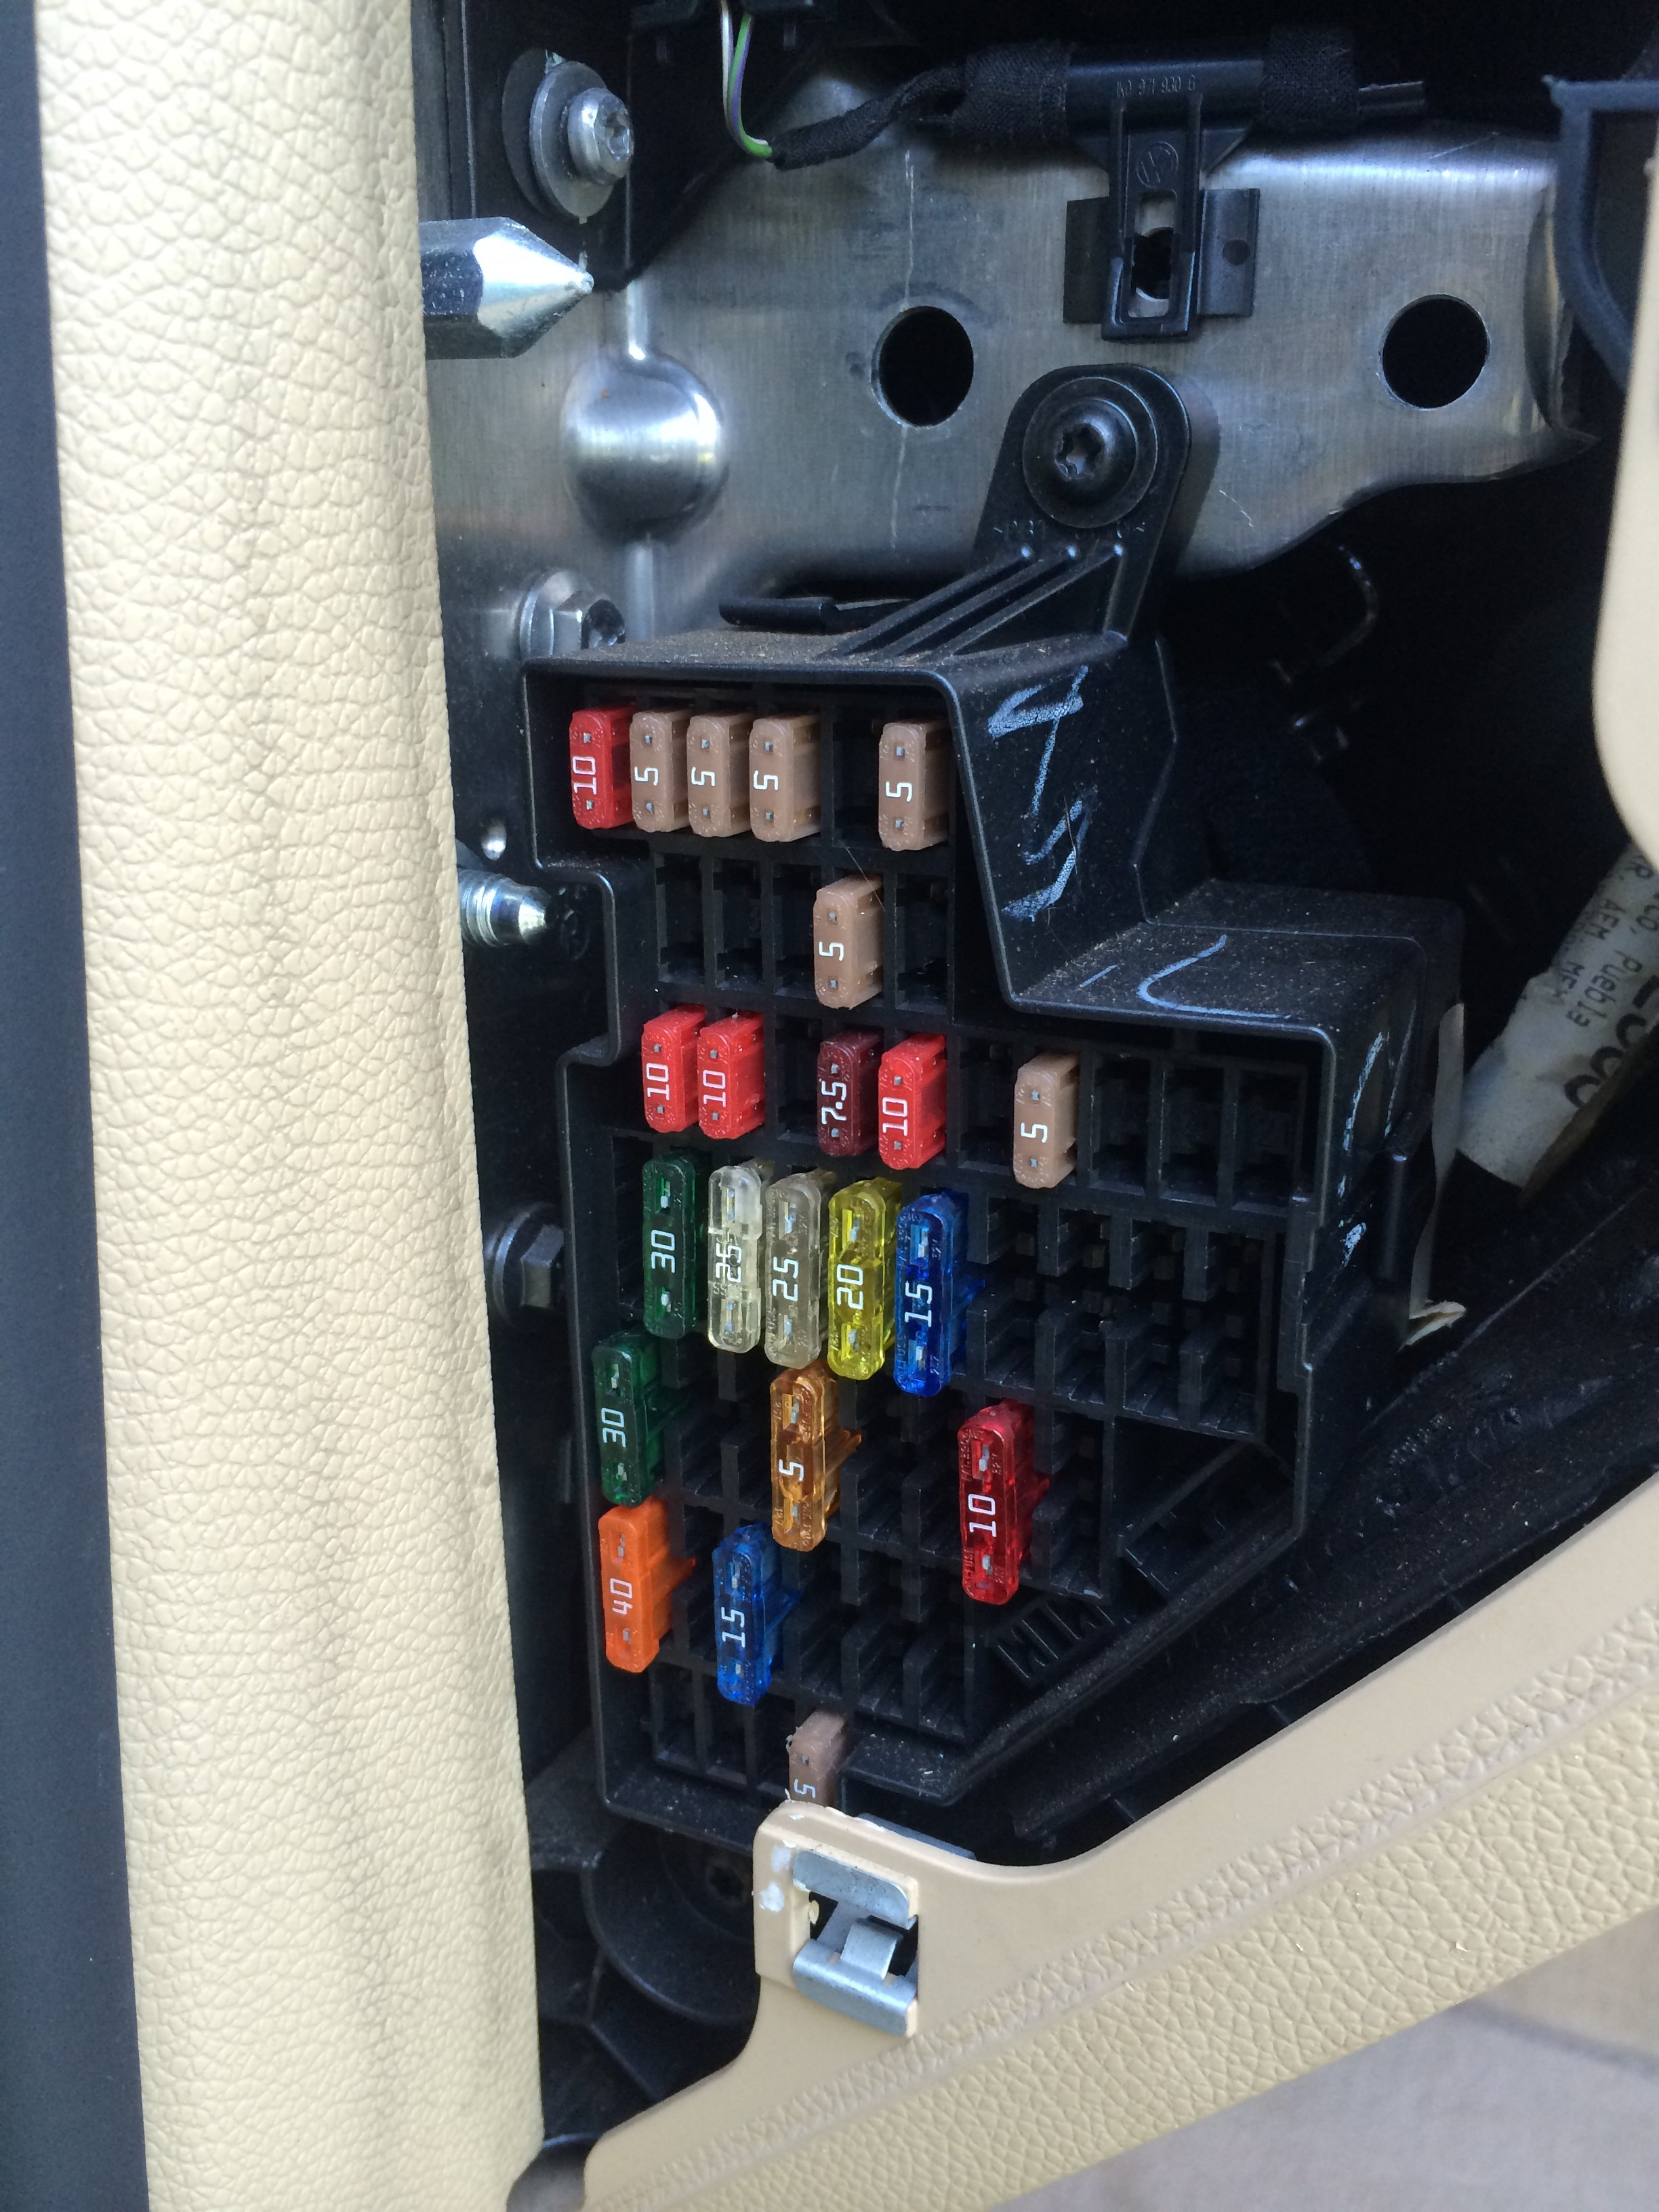 Vw Tdi Fuse Box Wiring Diagram Data 2012 Cc I Need A Or All Of Them So Can Figure Out Which